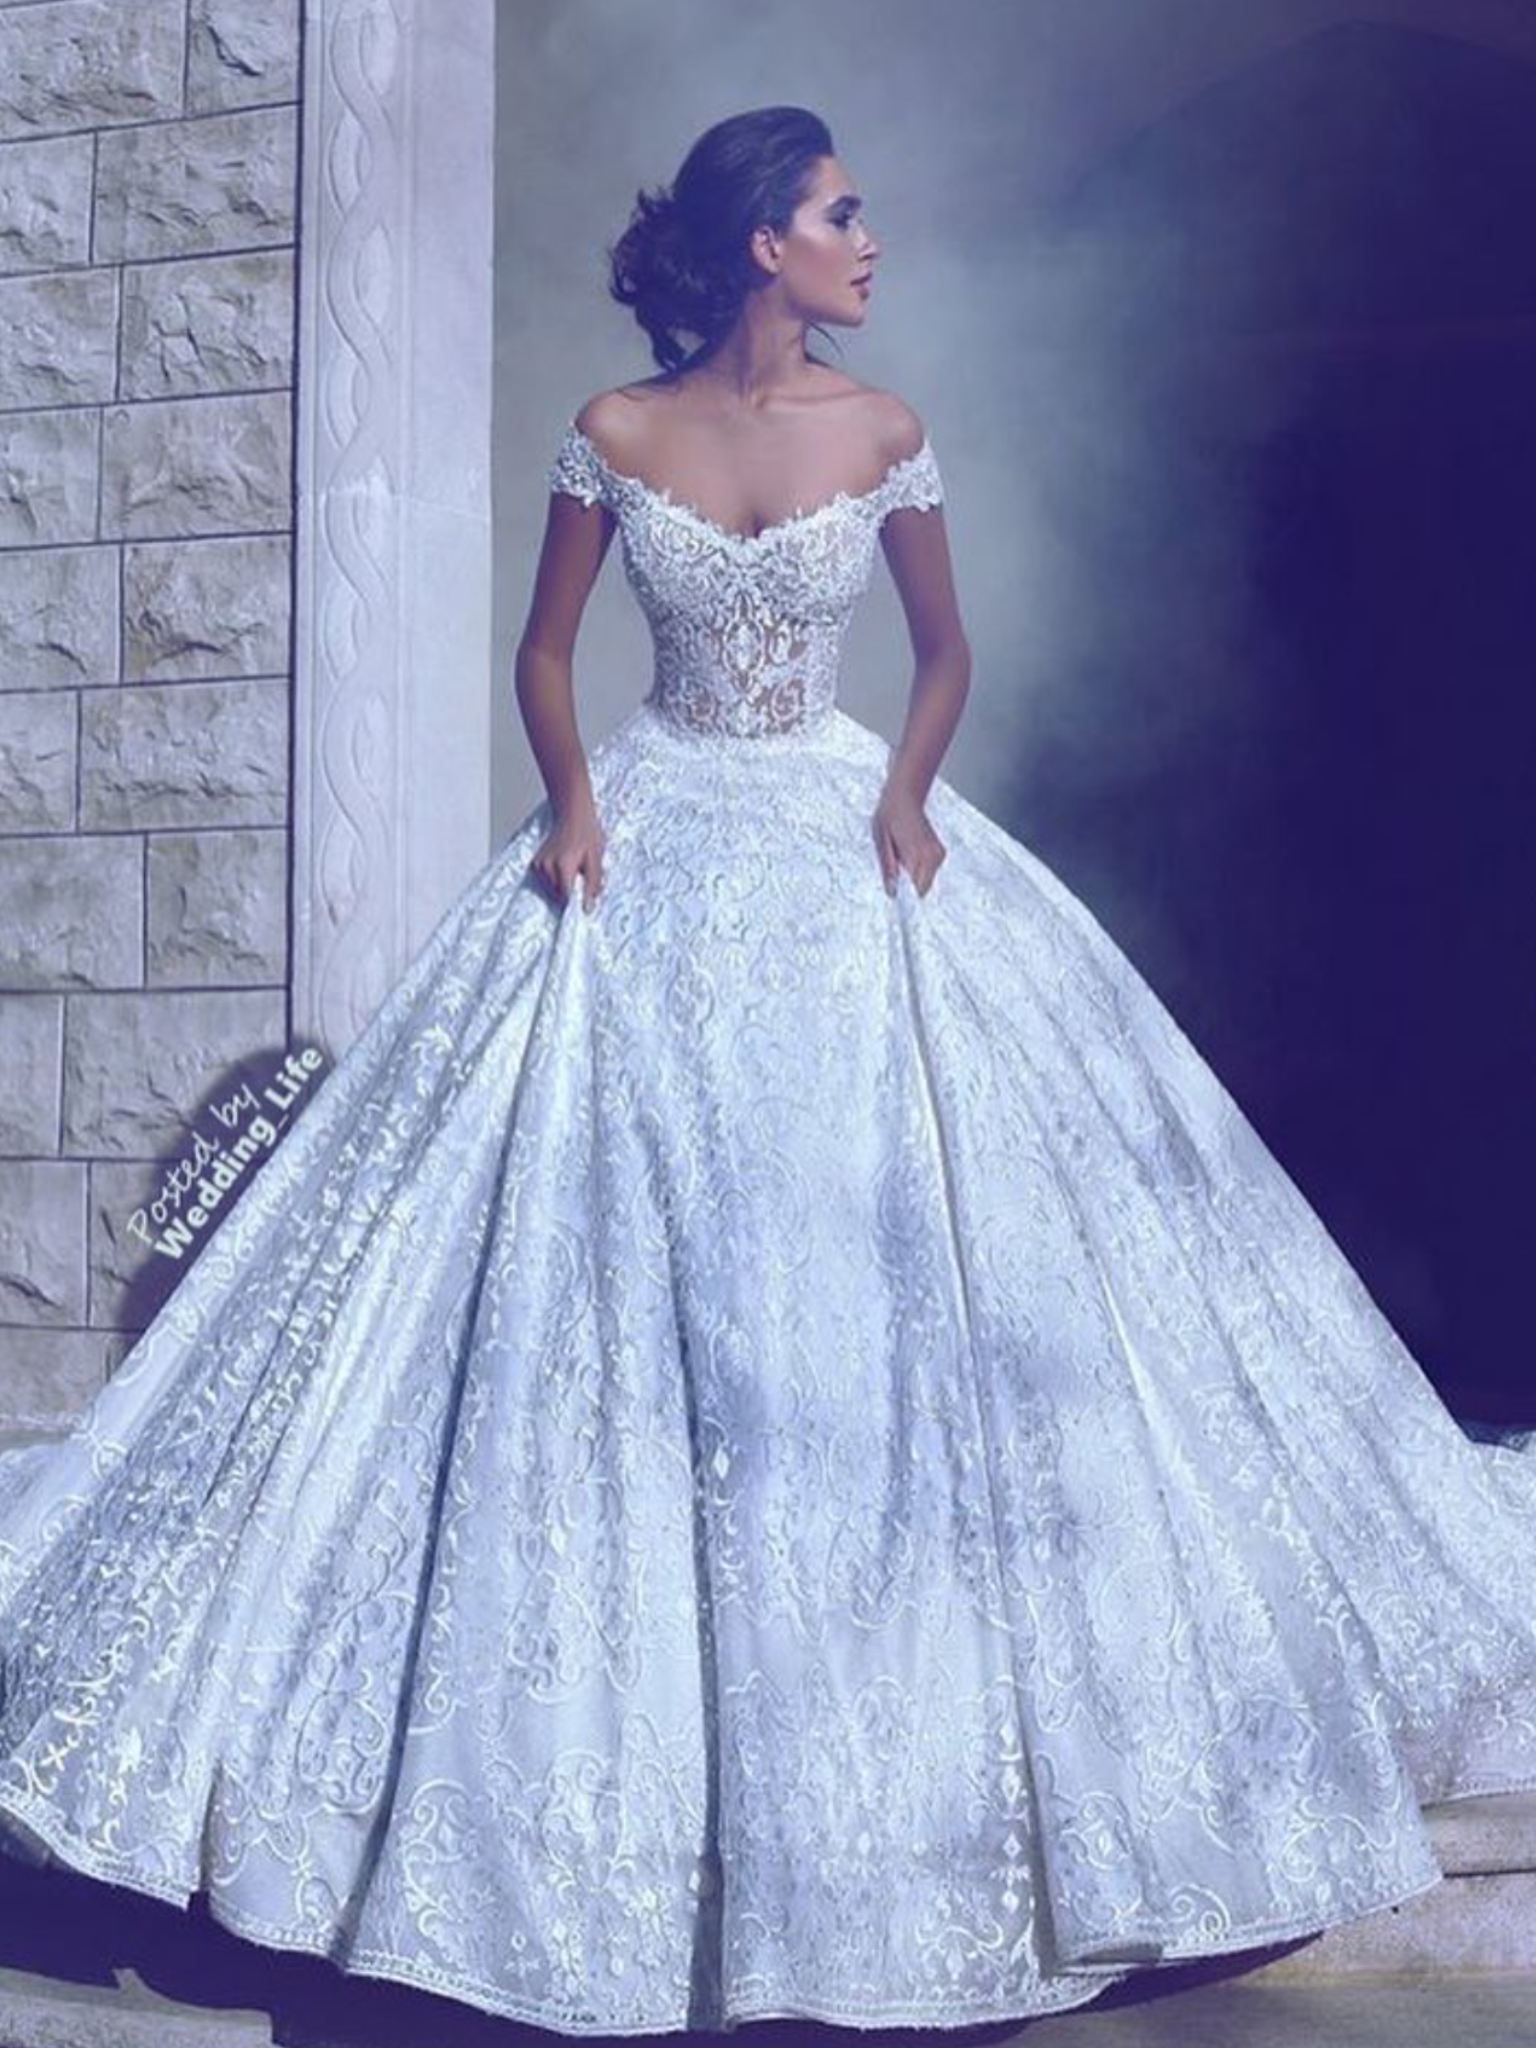 Love this fairytale dress. The skirt is perfect | Wedding - Dress ...